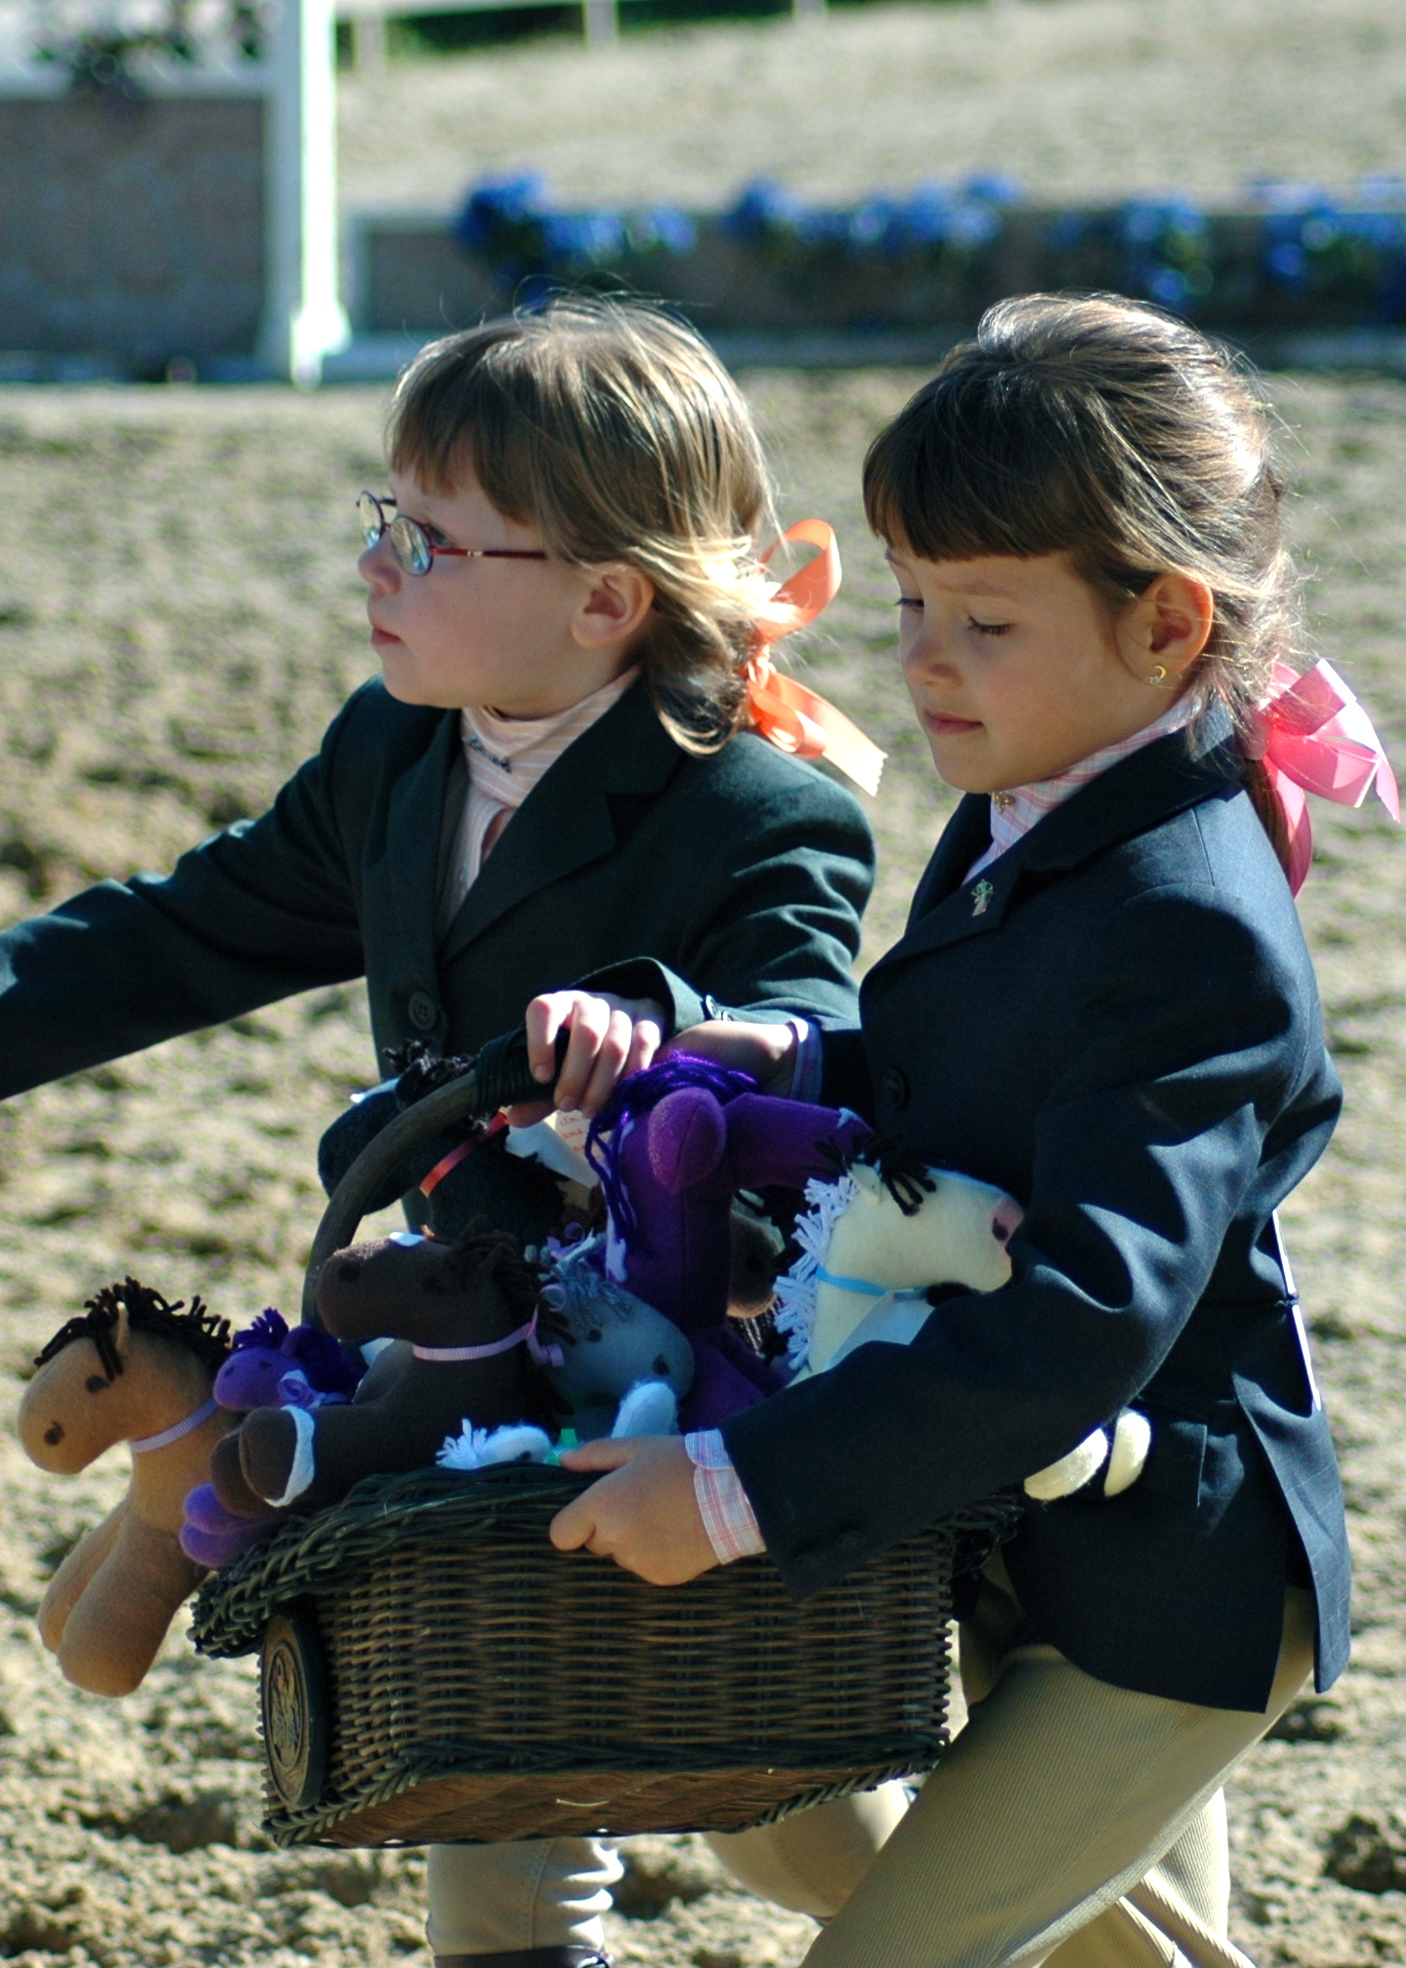 Special Flopsey Ponies awarded in the costume classes.